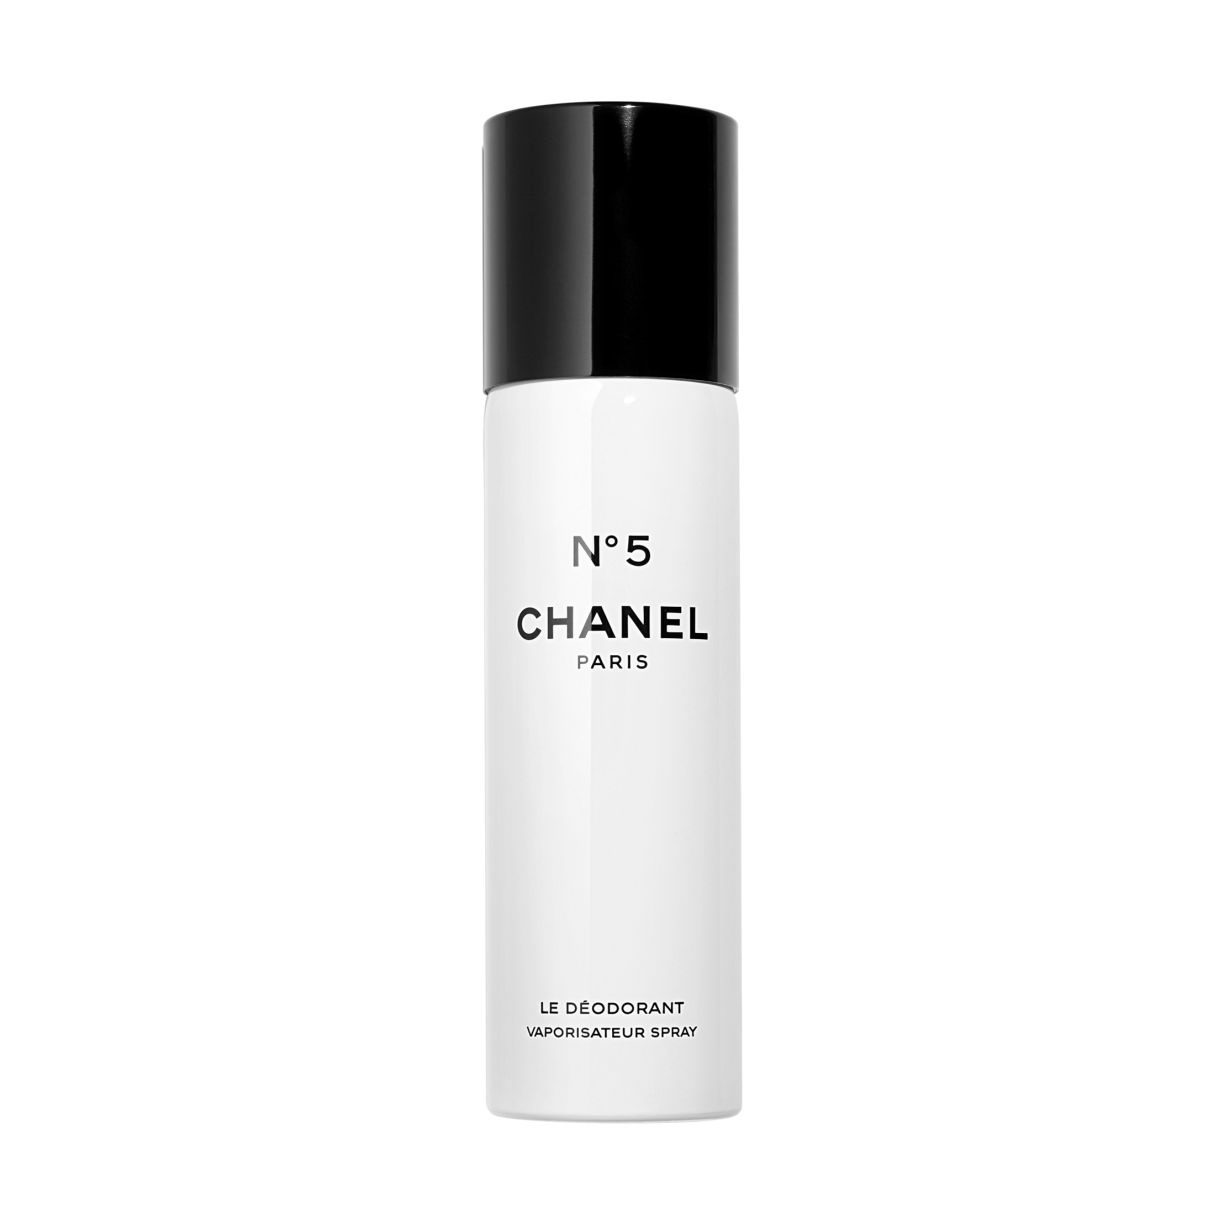 N°5 SPRAY DEODORANT 100ml